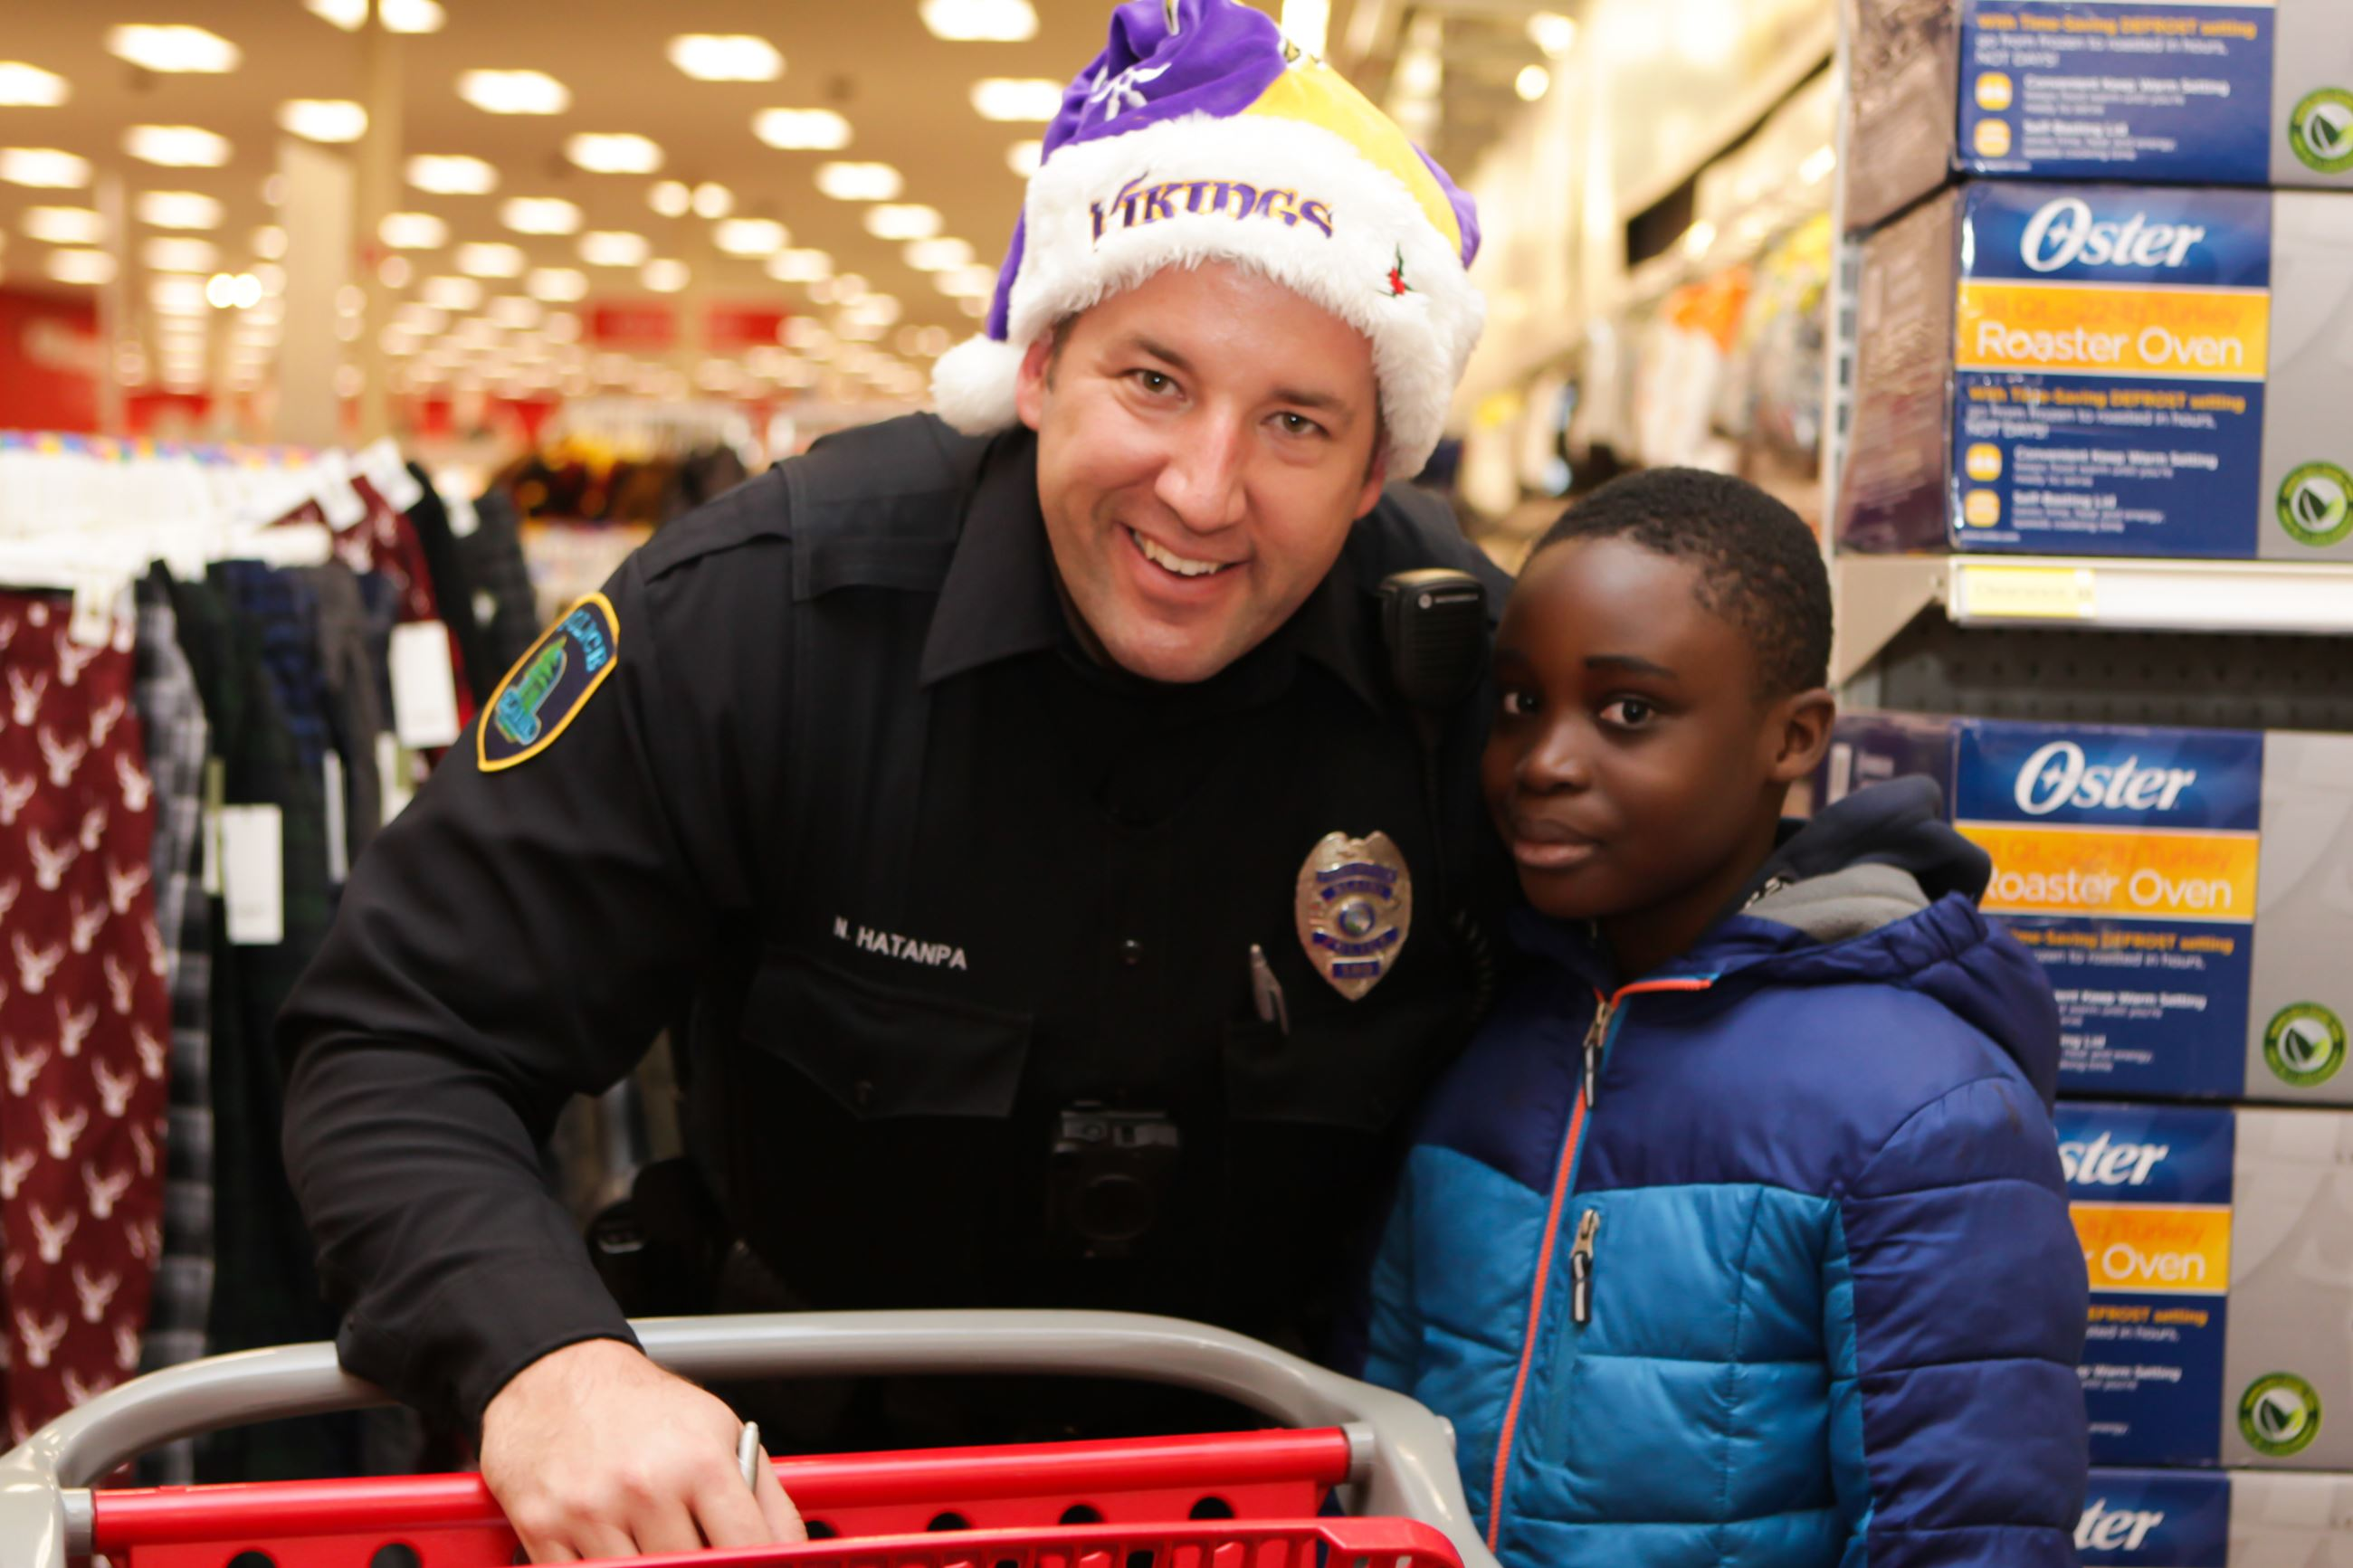 Officer, Heroes and Helpers